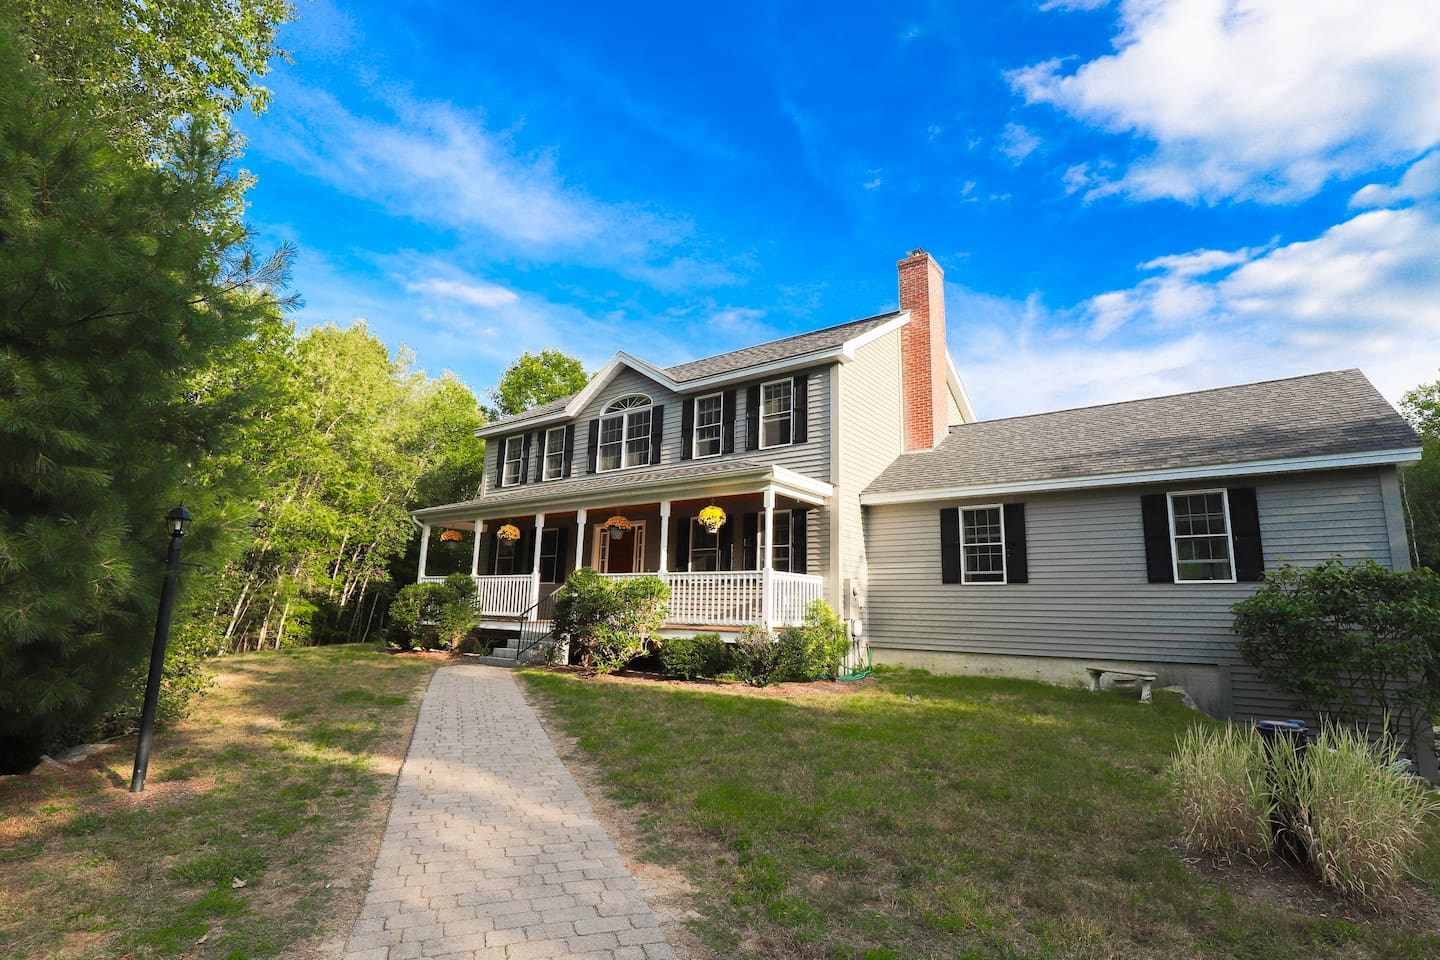 Front View of our Sunapee Four Season Getaway Home and Porch